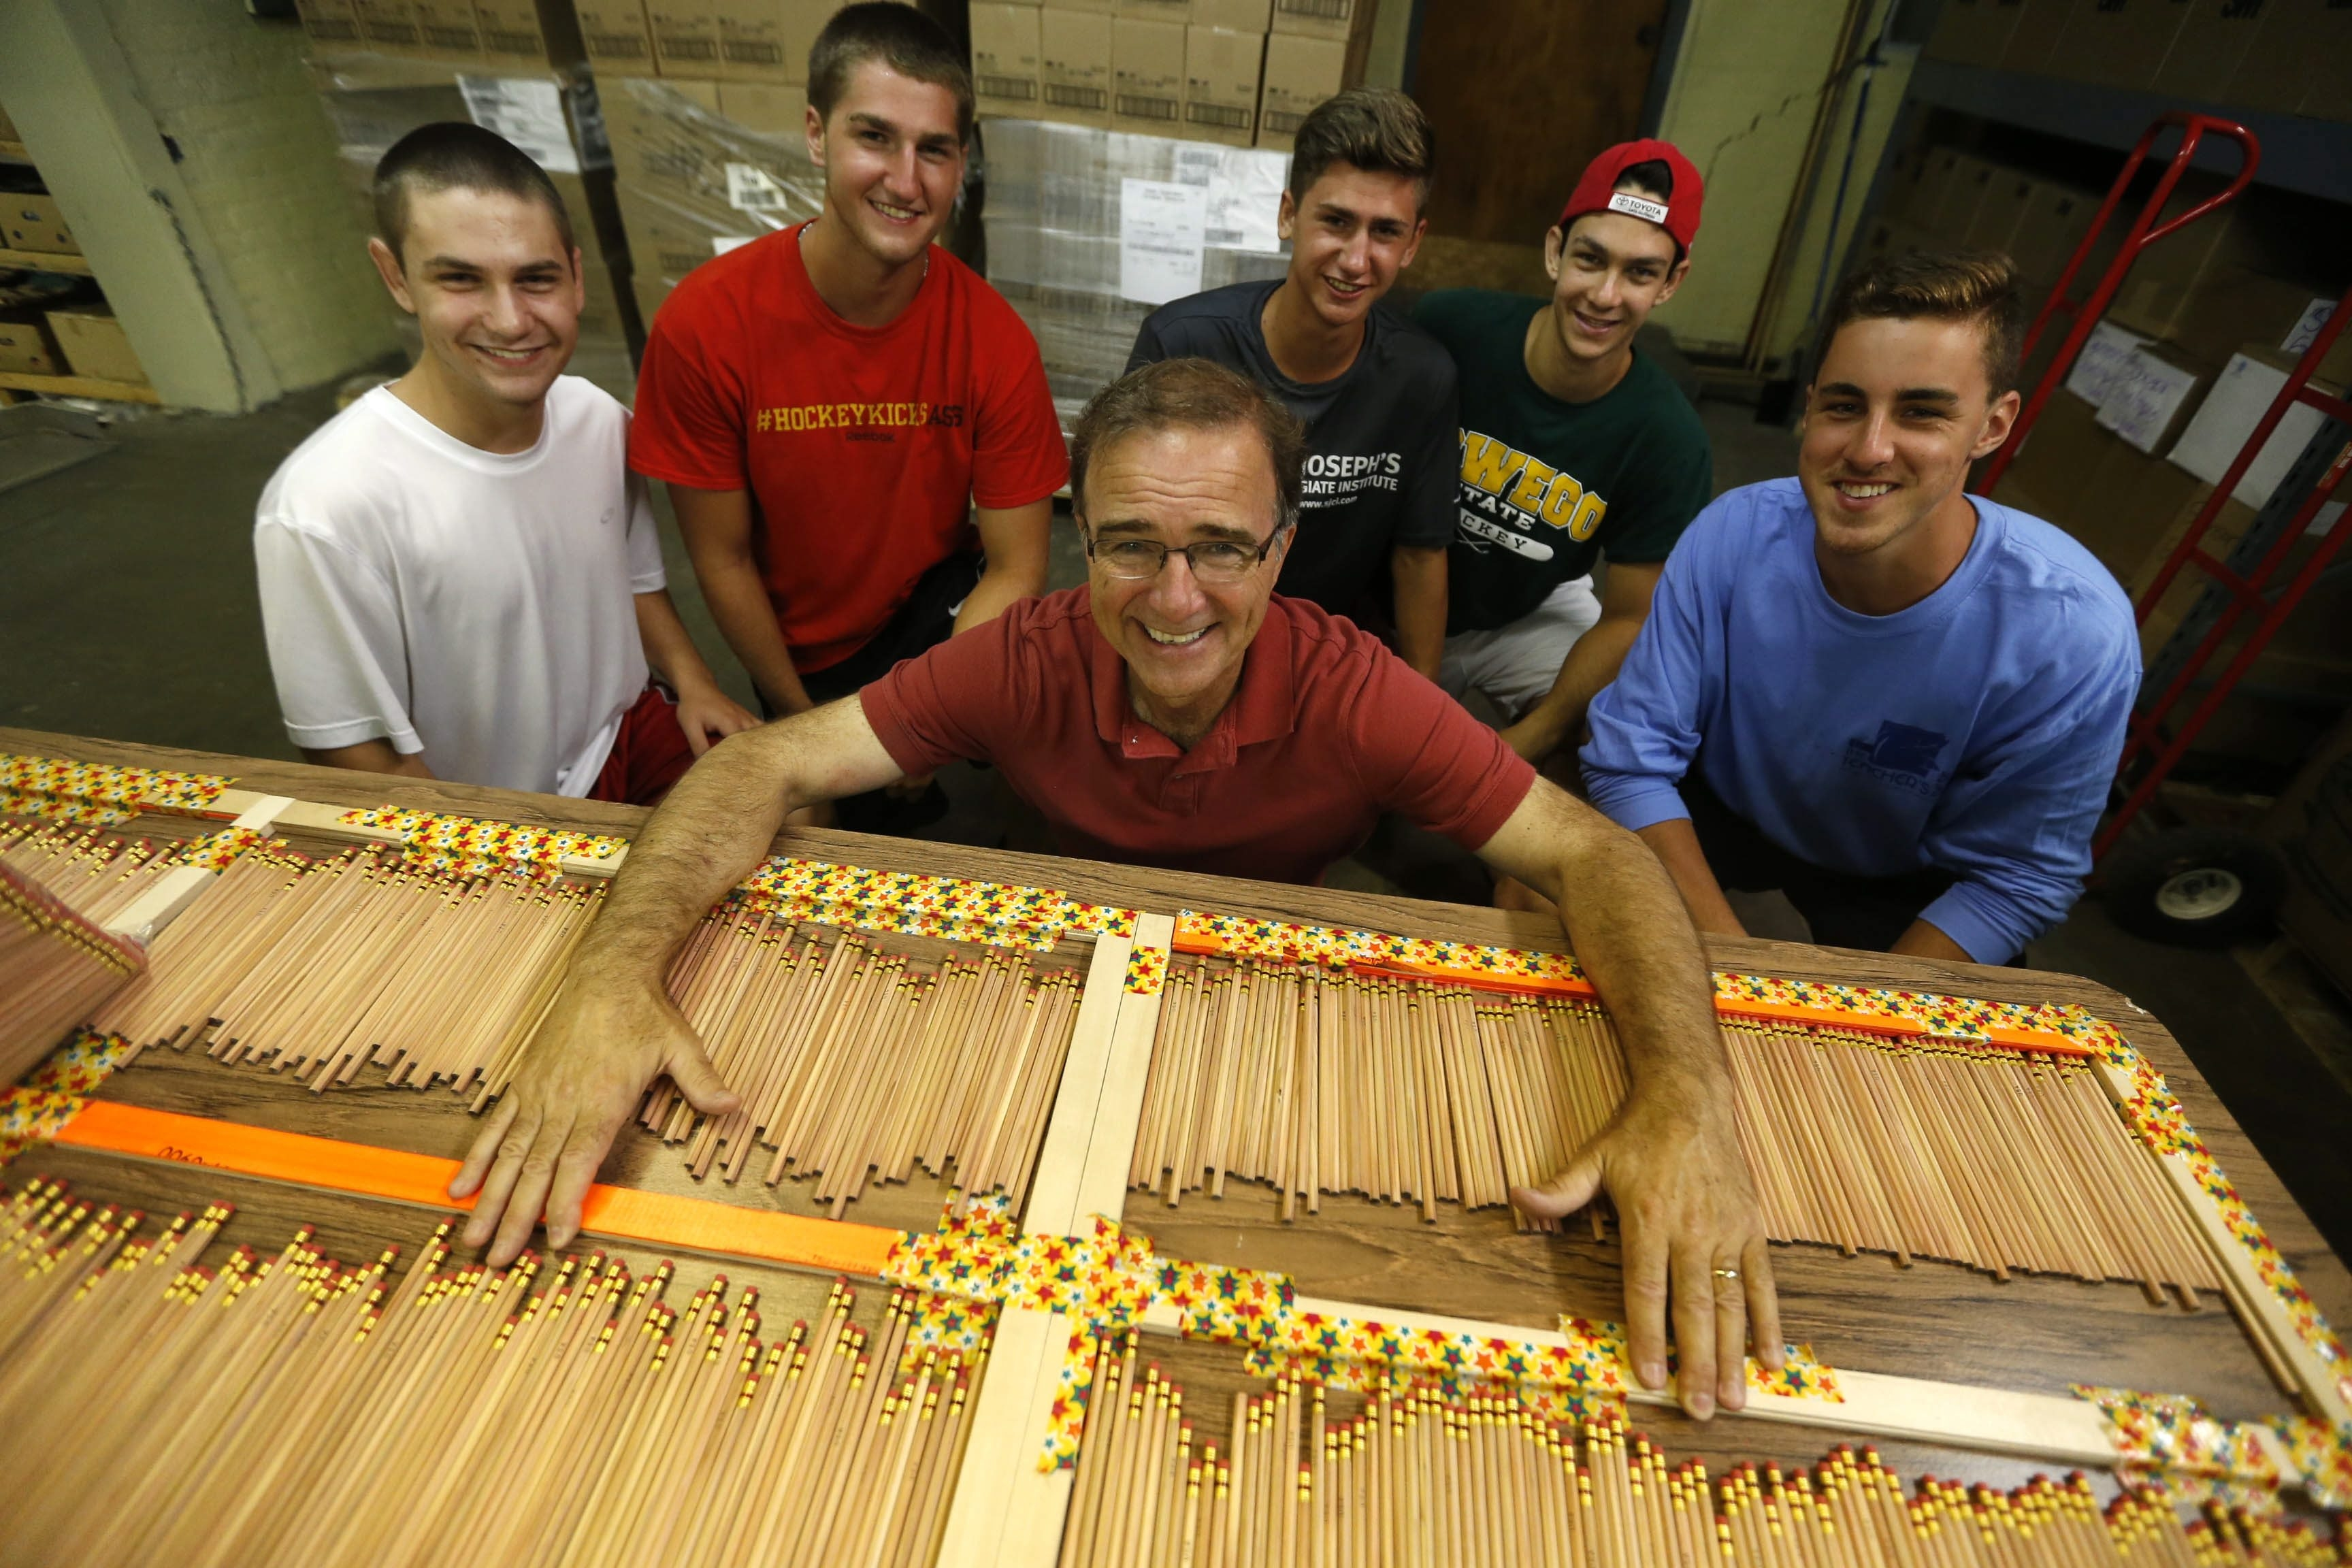 The Pencil Project founder John Mika poses with volunteers next to a small fraction of pencils on a counting table on Wednesday. Mika partnered with First Niagara Bank, Flexo Transparent Inc., NAEIR and Dixon Ticonderoga Co. to obtain the 1 million pencils.